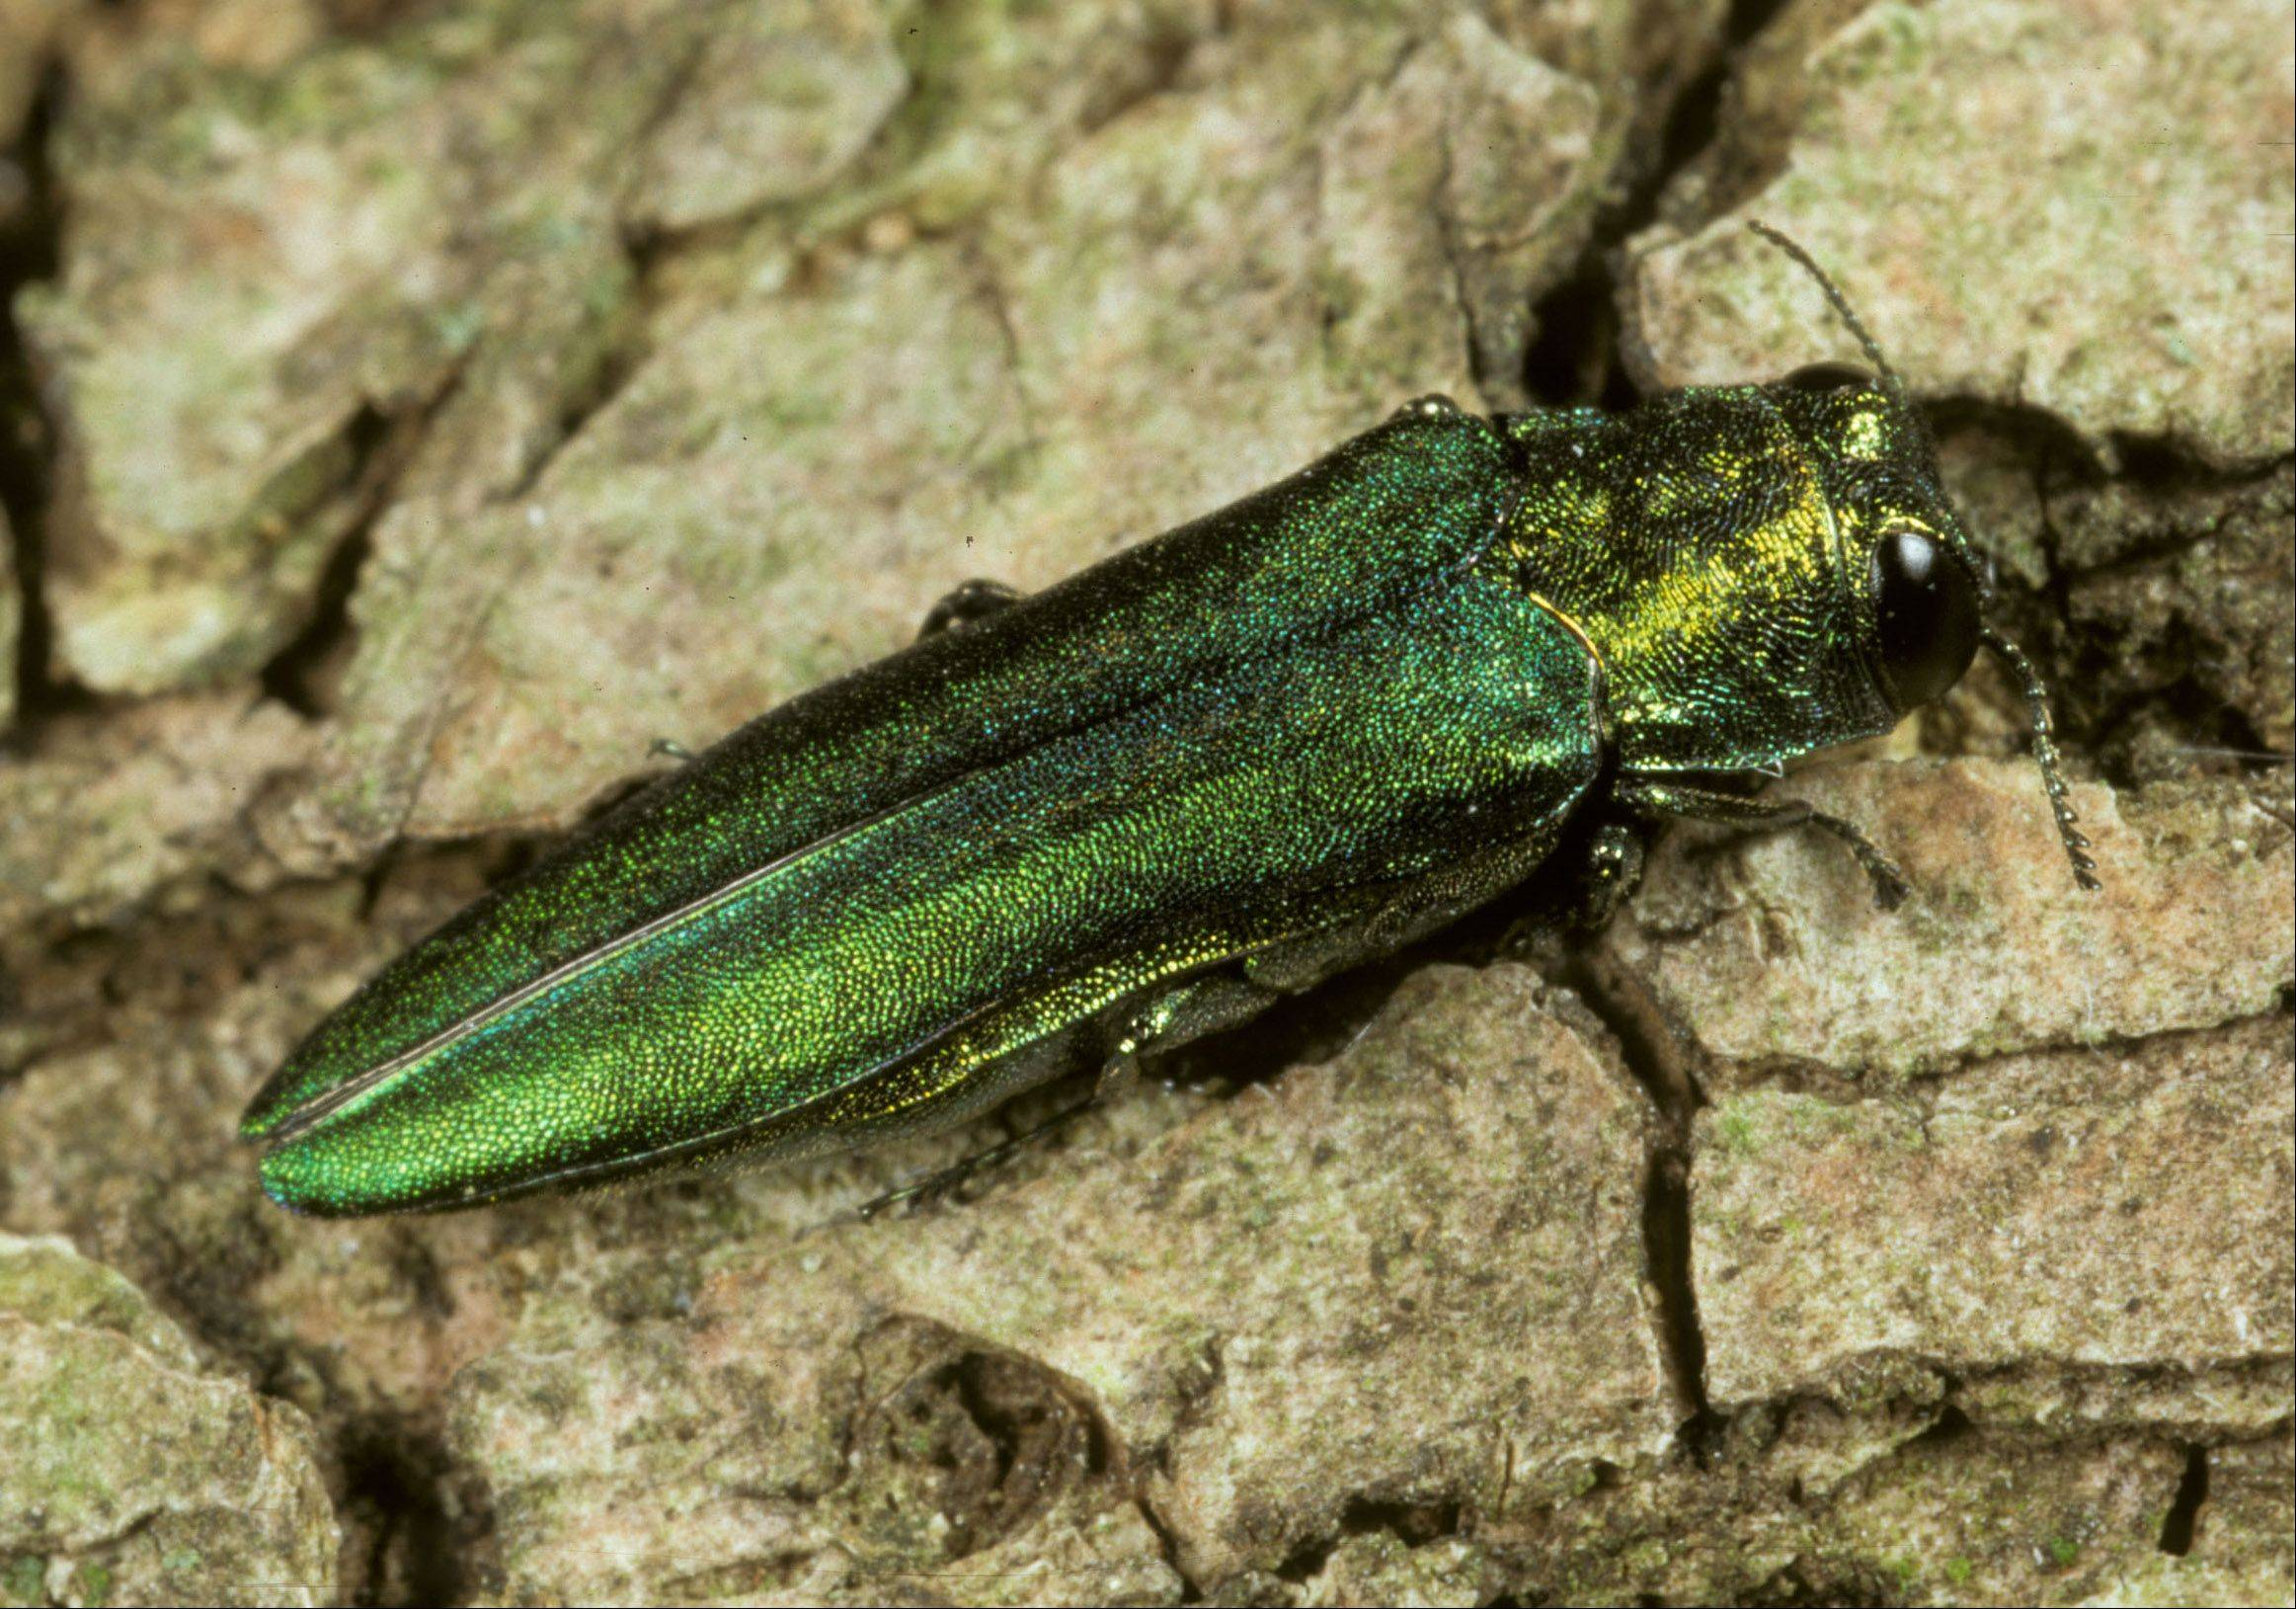 Bartlett officials discussed plans Tuesday to continue eliminating trees in the village that are affected by the emerald ash borer.